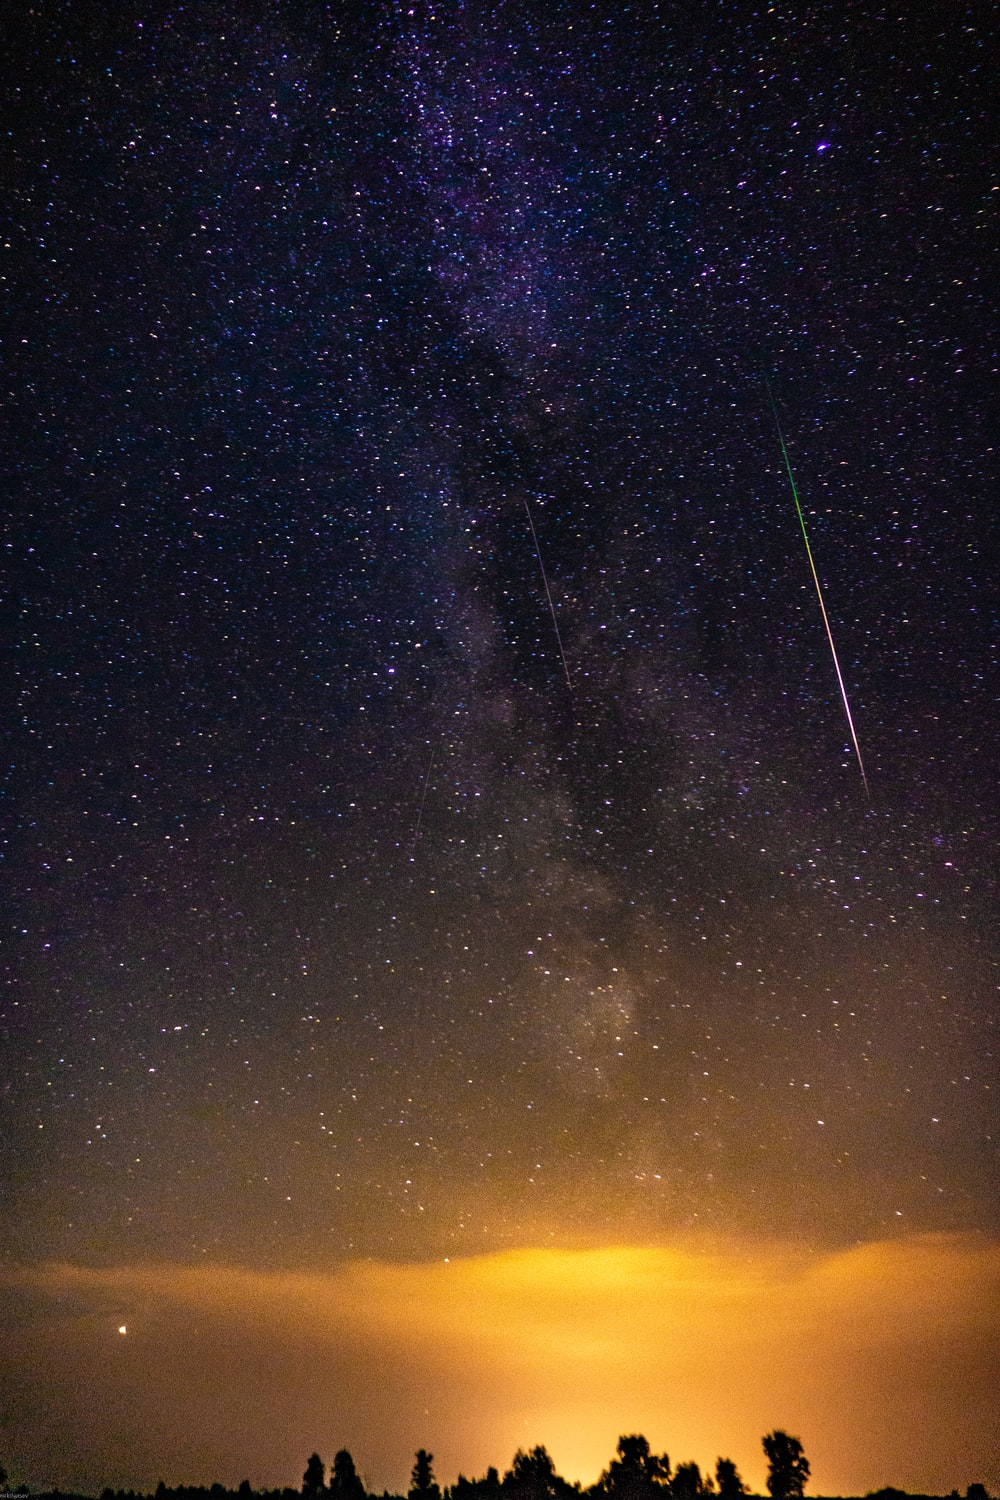 Meteor Shower Pictures Download Free Images On Unsplash